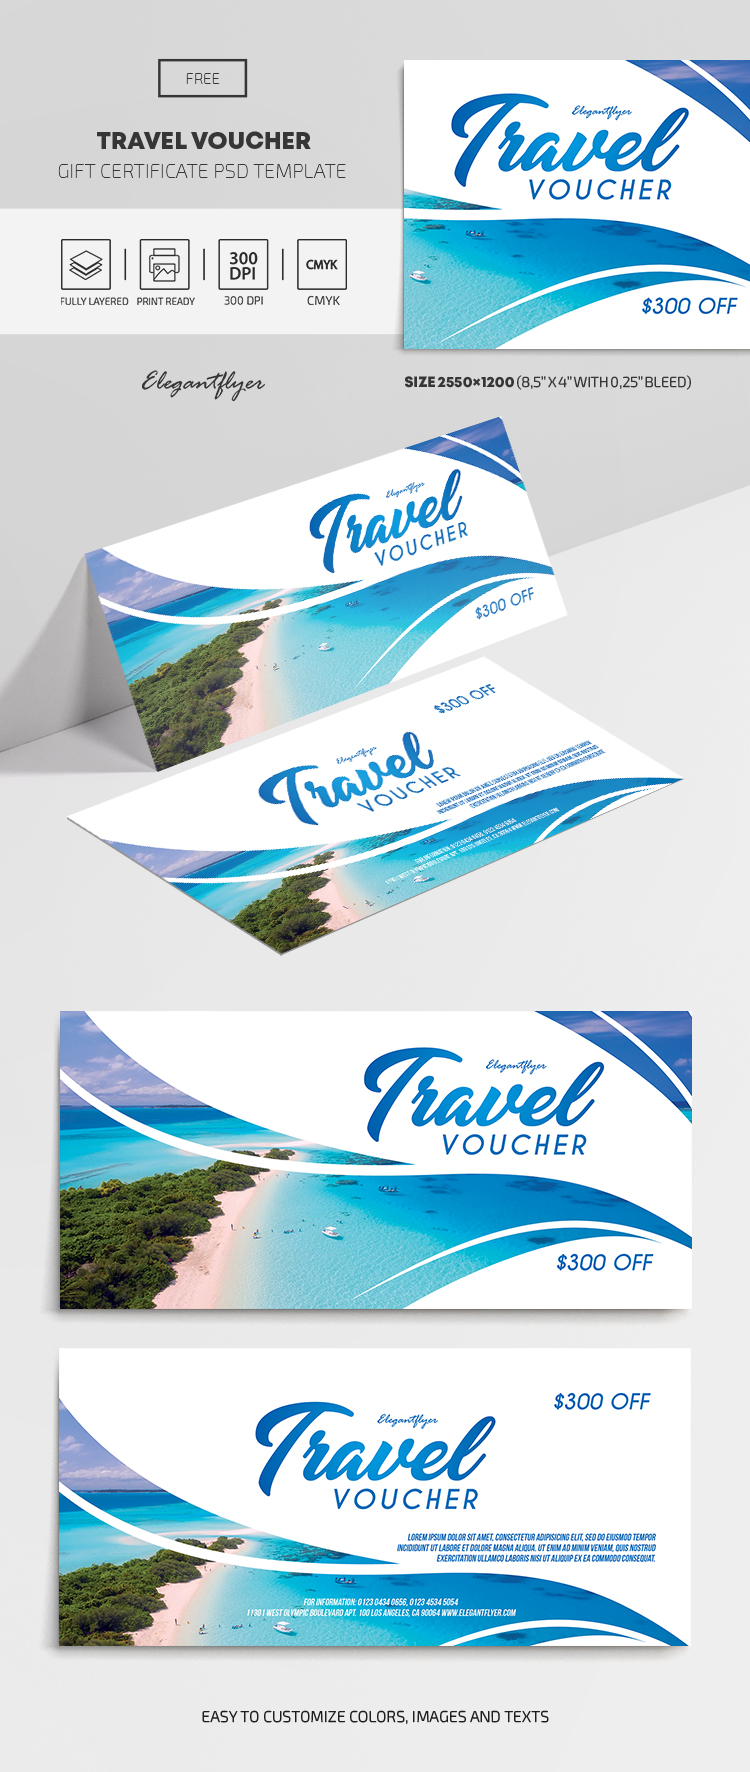 Travel Voucher – Free Gift Certificate Template